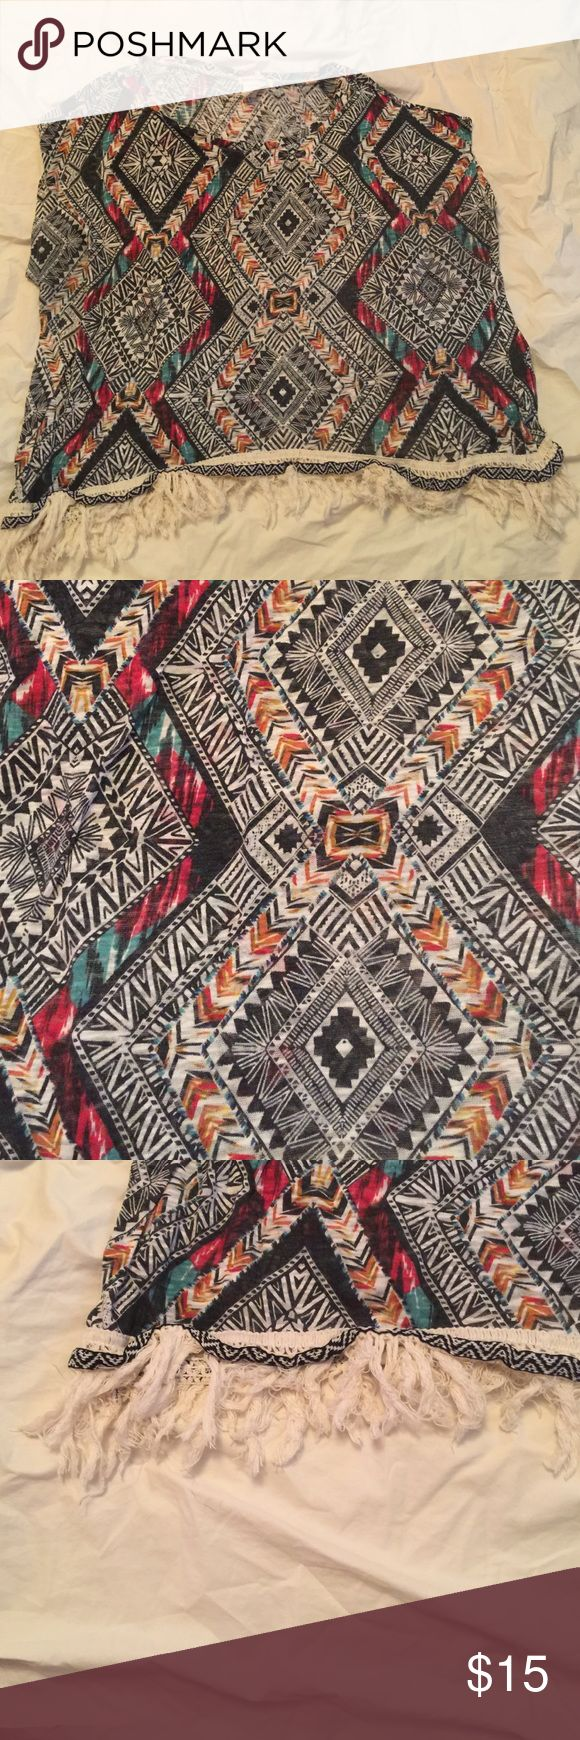 Used Plus size Aztec shirt with fringes size 22/24 Used and in good condition. Make me an offer Tops Tees - Short Sleeve